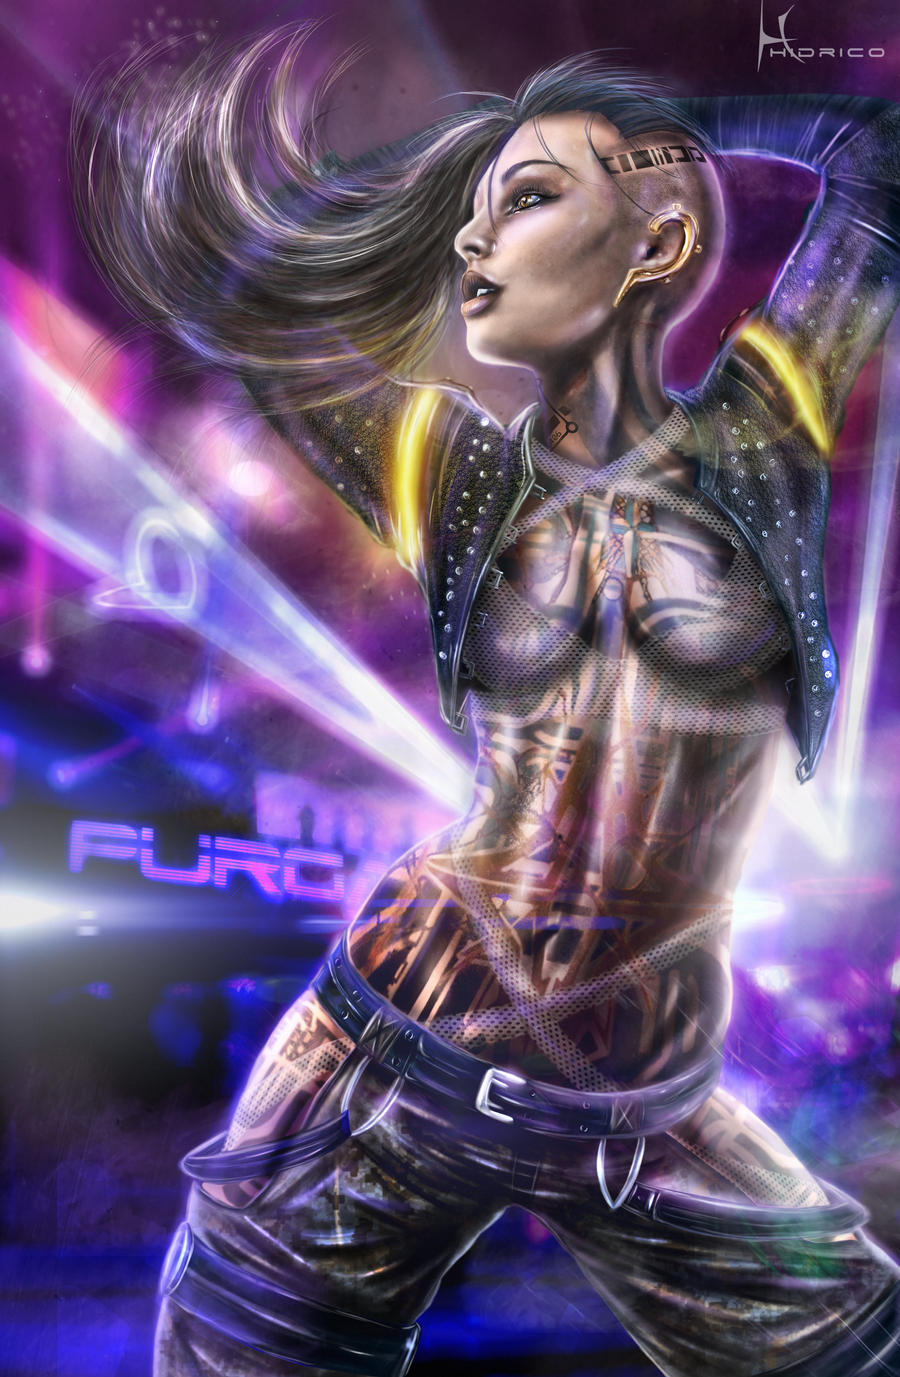 Mass effect edi crazy futa mix 10